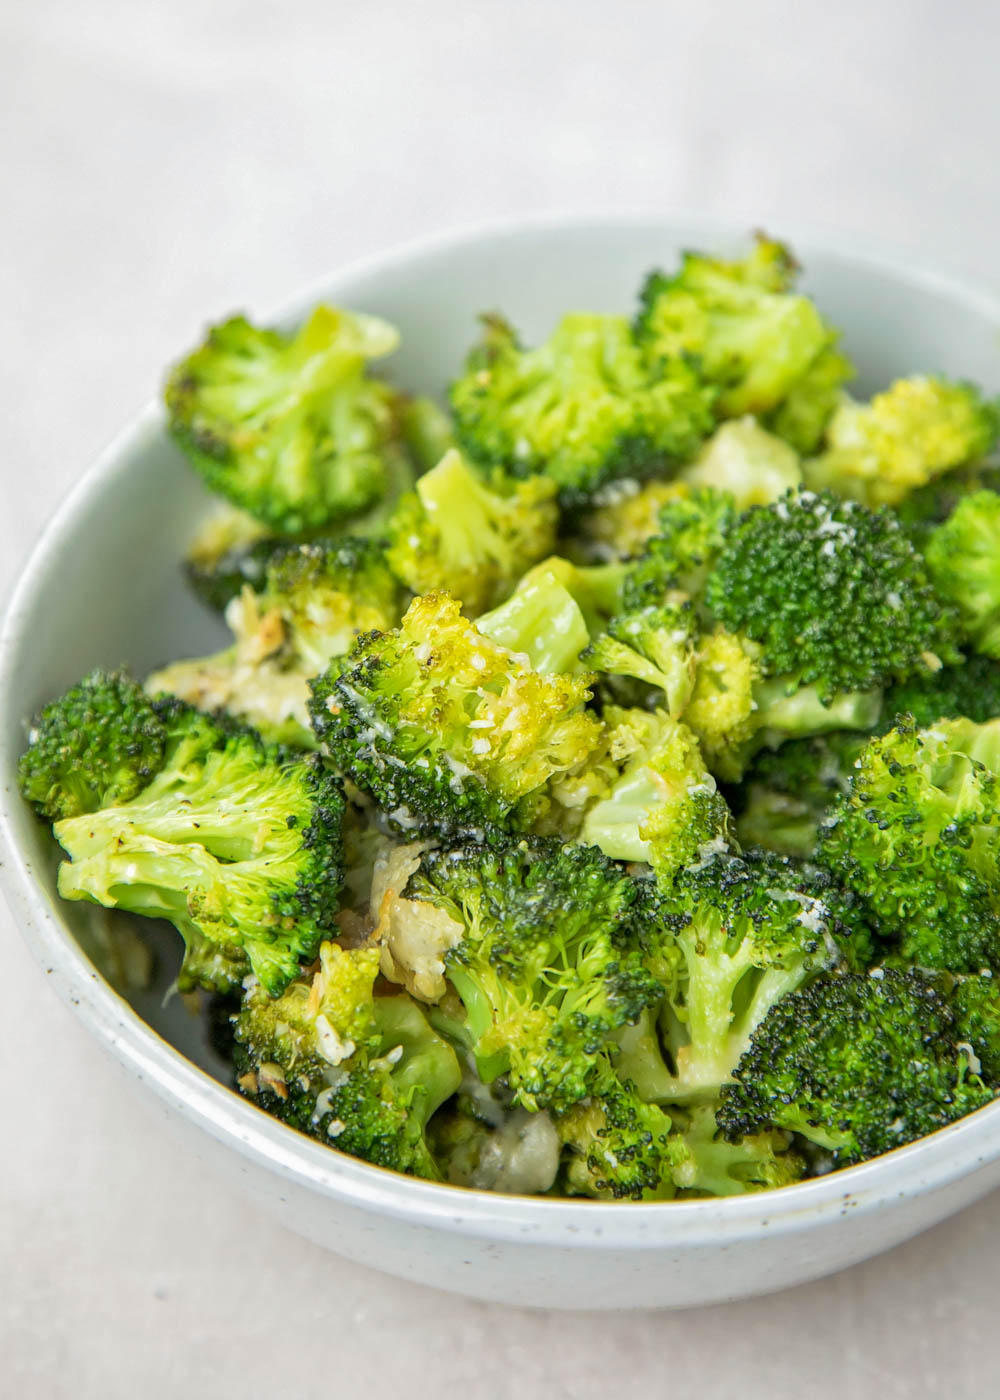 Close up of oven roasted broccoli in a bowl